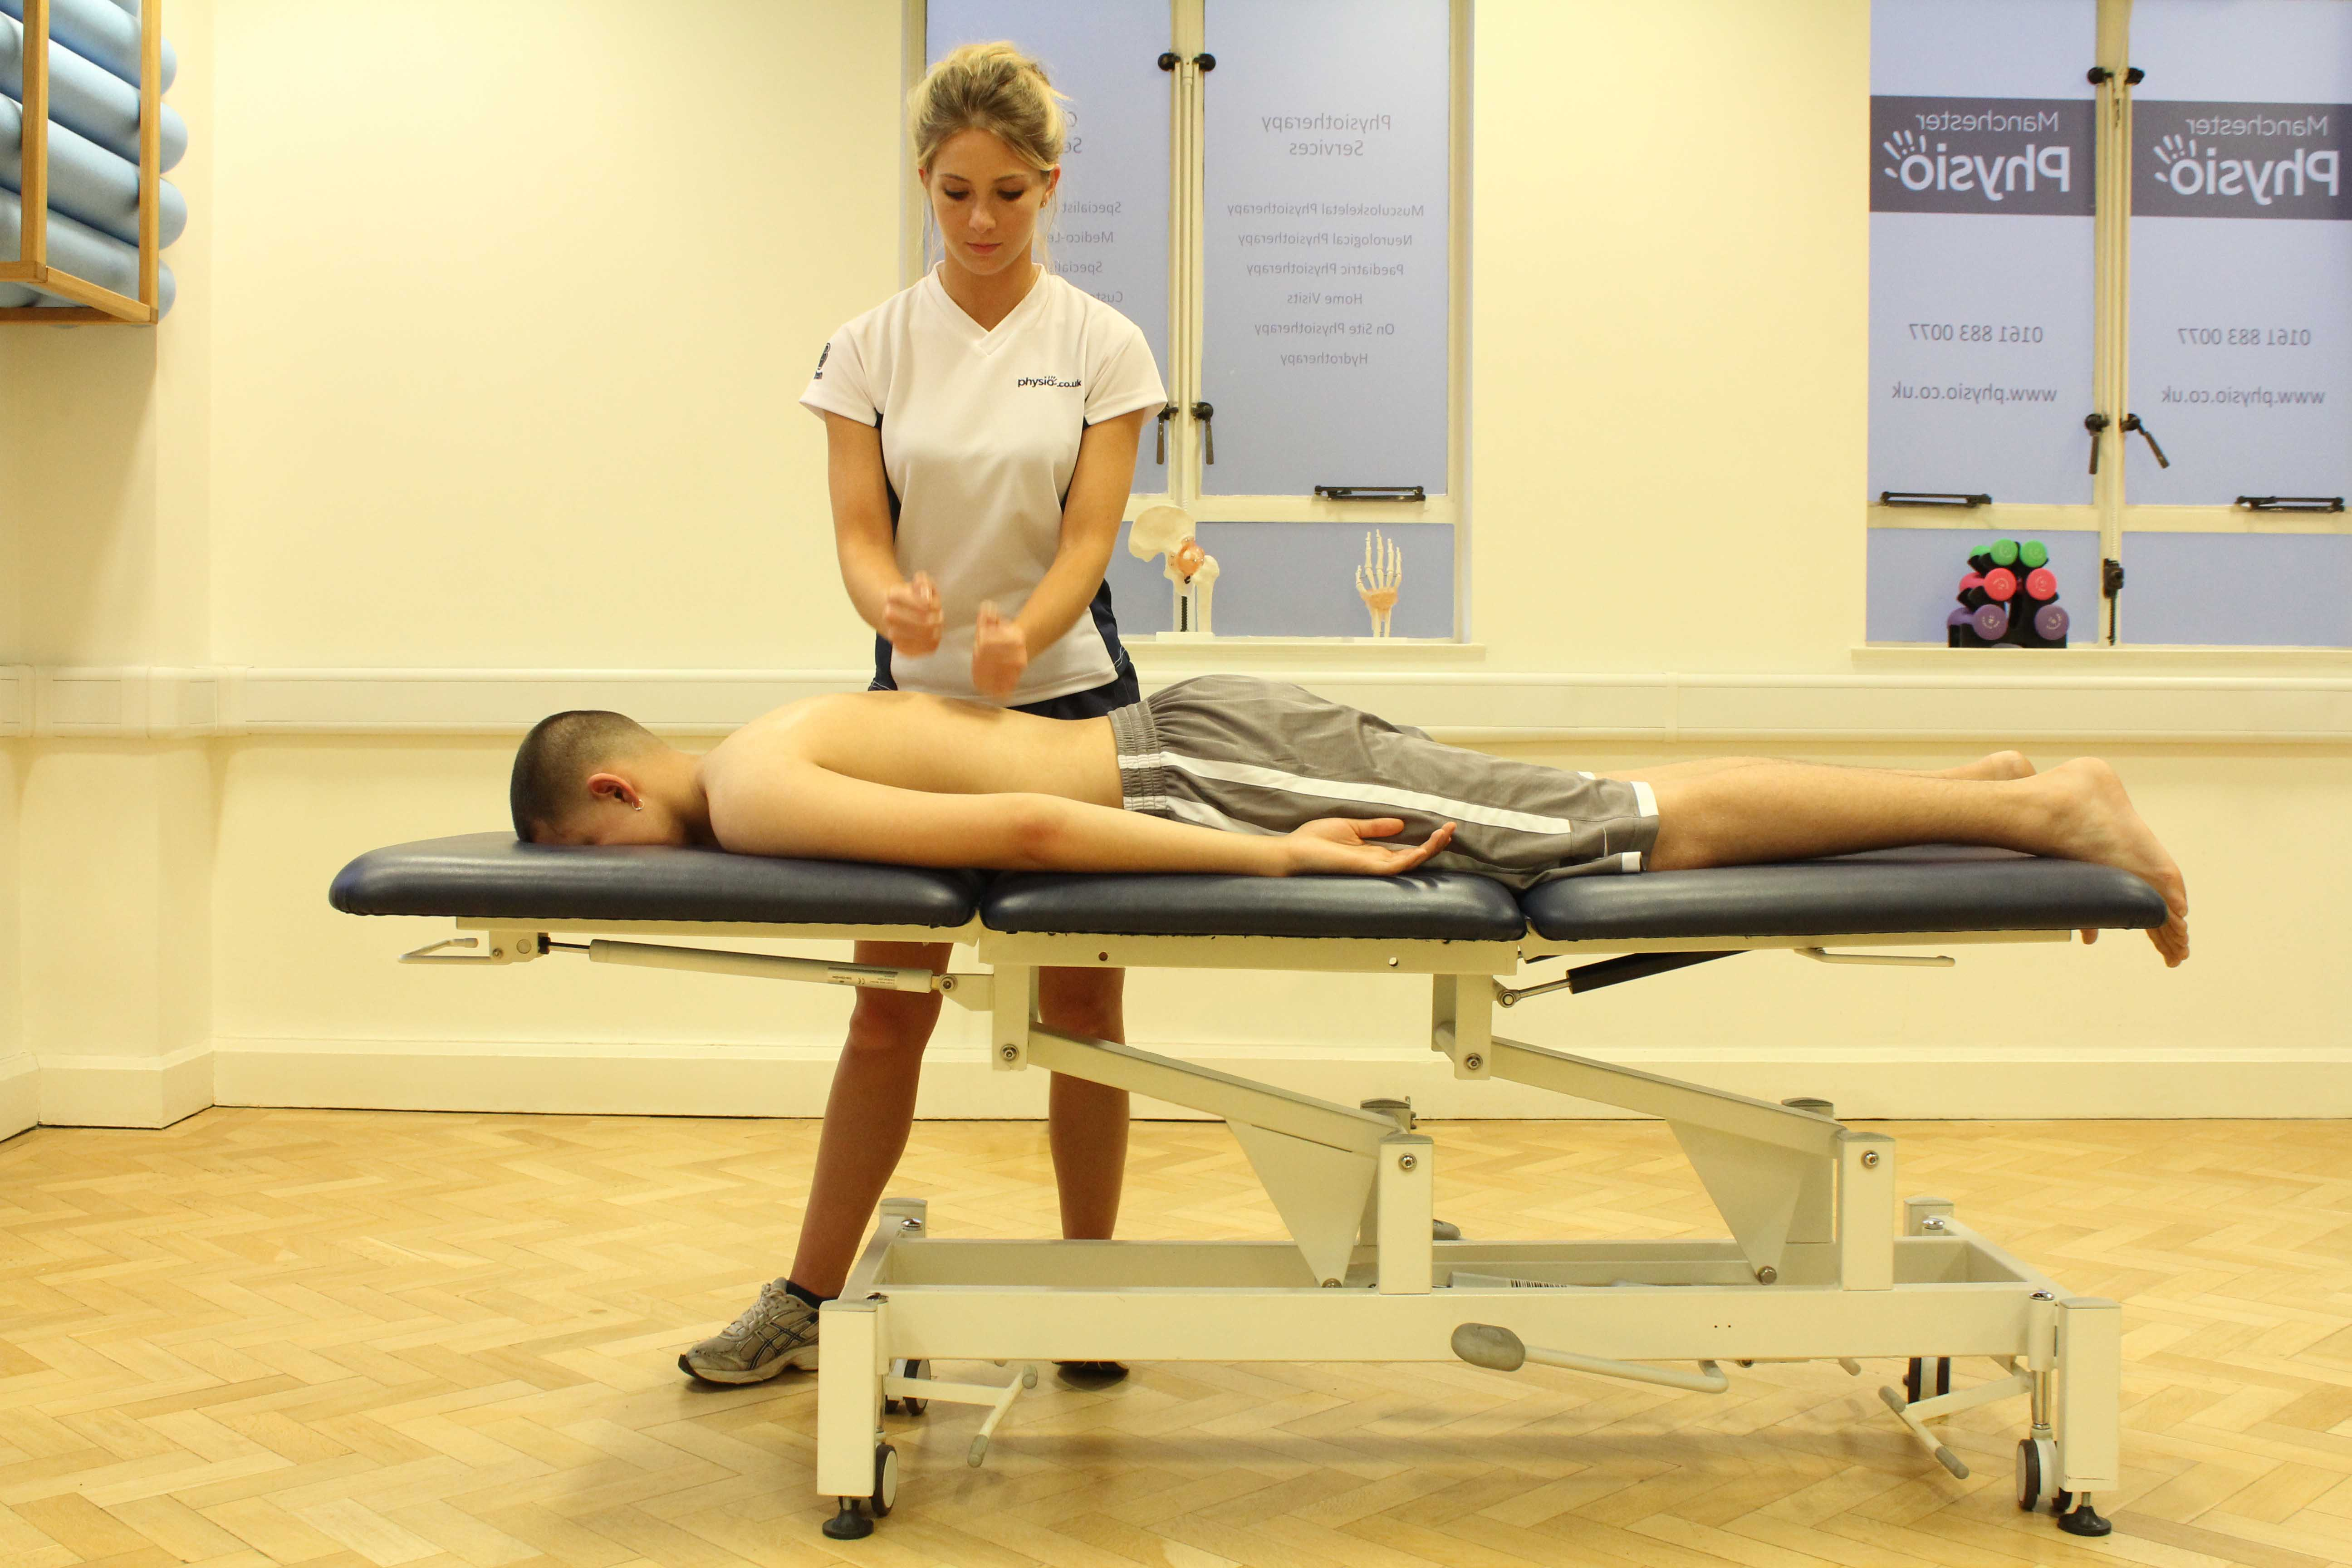 Percussion massage applied to the mid thoracic spine